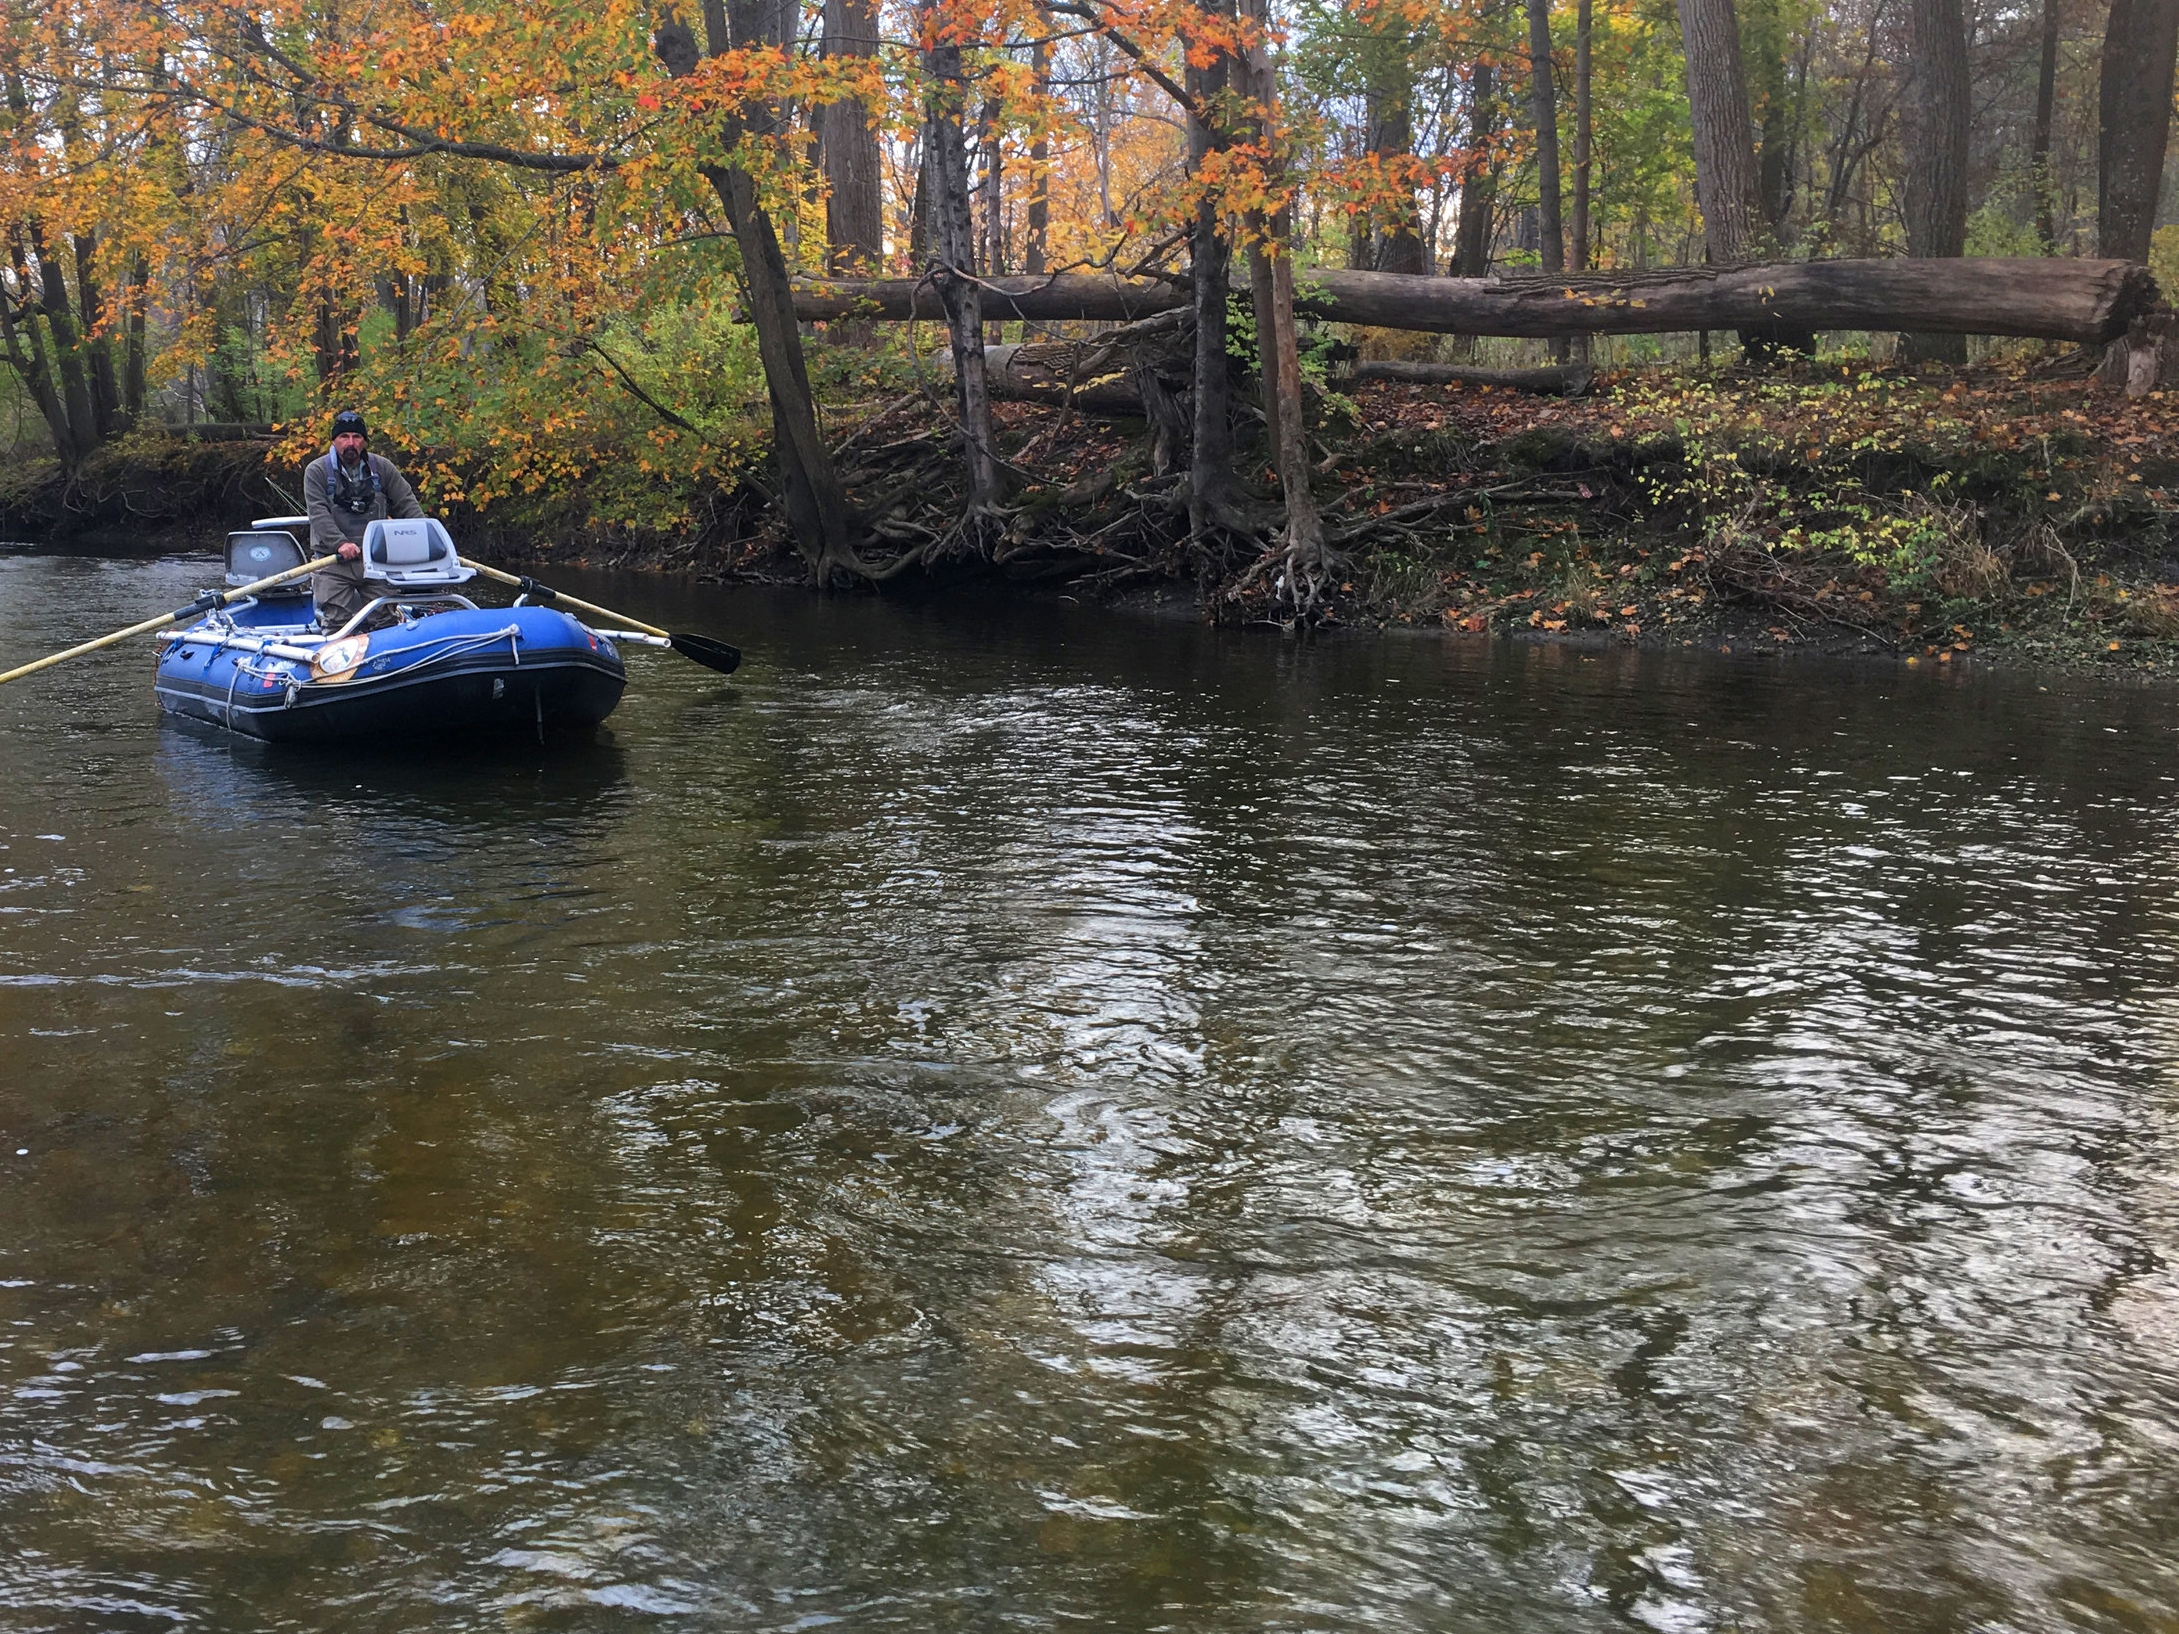 Guided Fly Fishing - Driftboat or wade the Farmington River and area streams